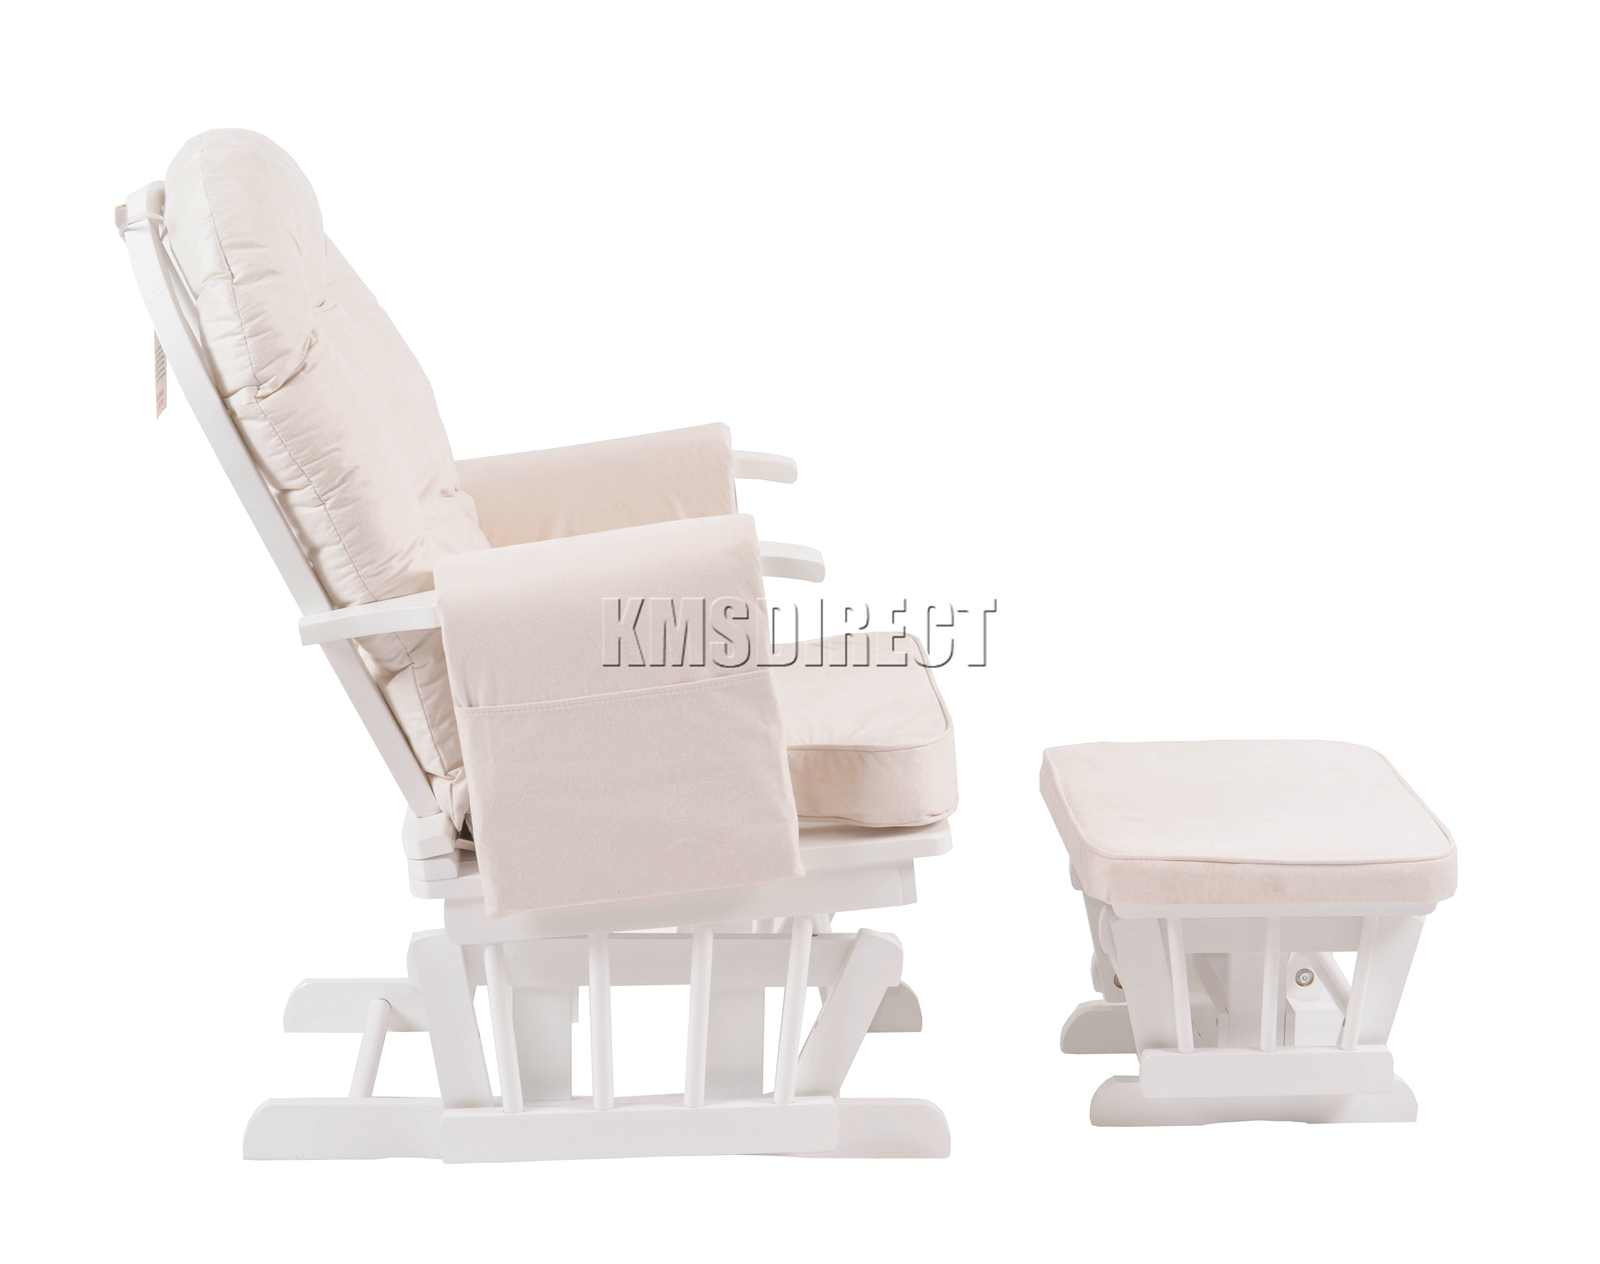 FoxHunter-Nursing-Glider-Maternity-Rocking-Chair-With-Stool-White-Wood-Frame-New miniatuur 26